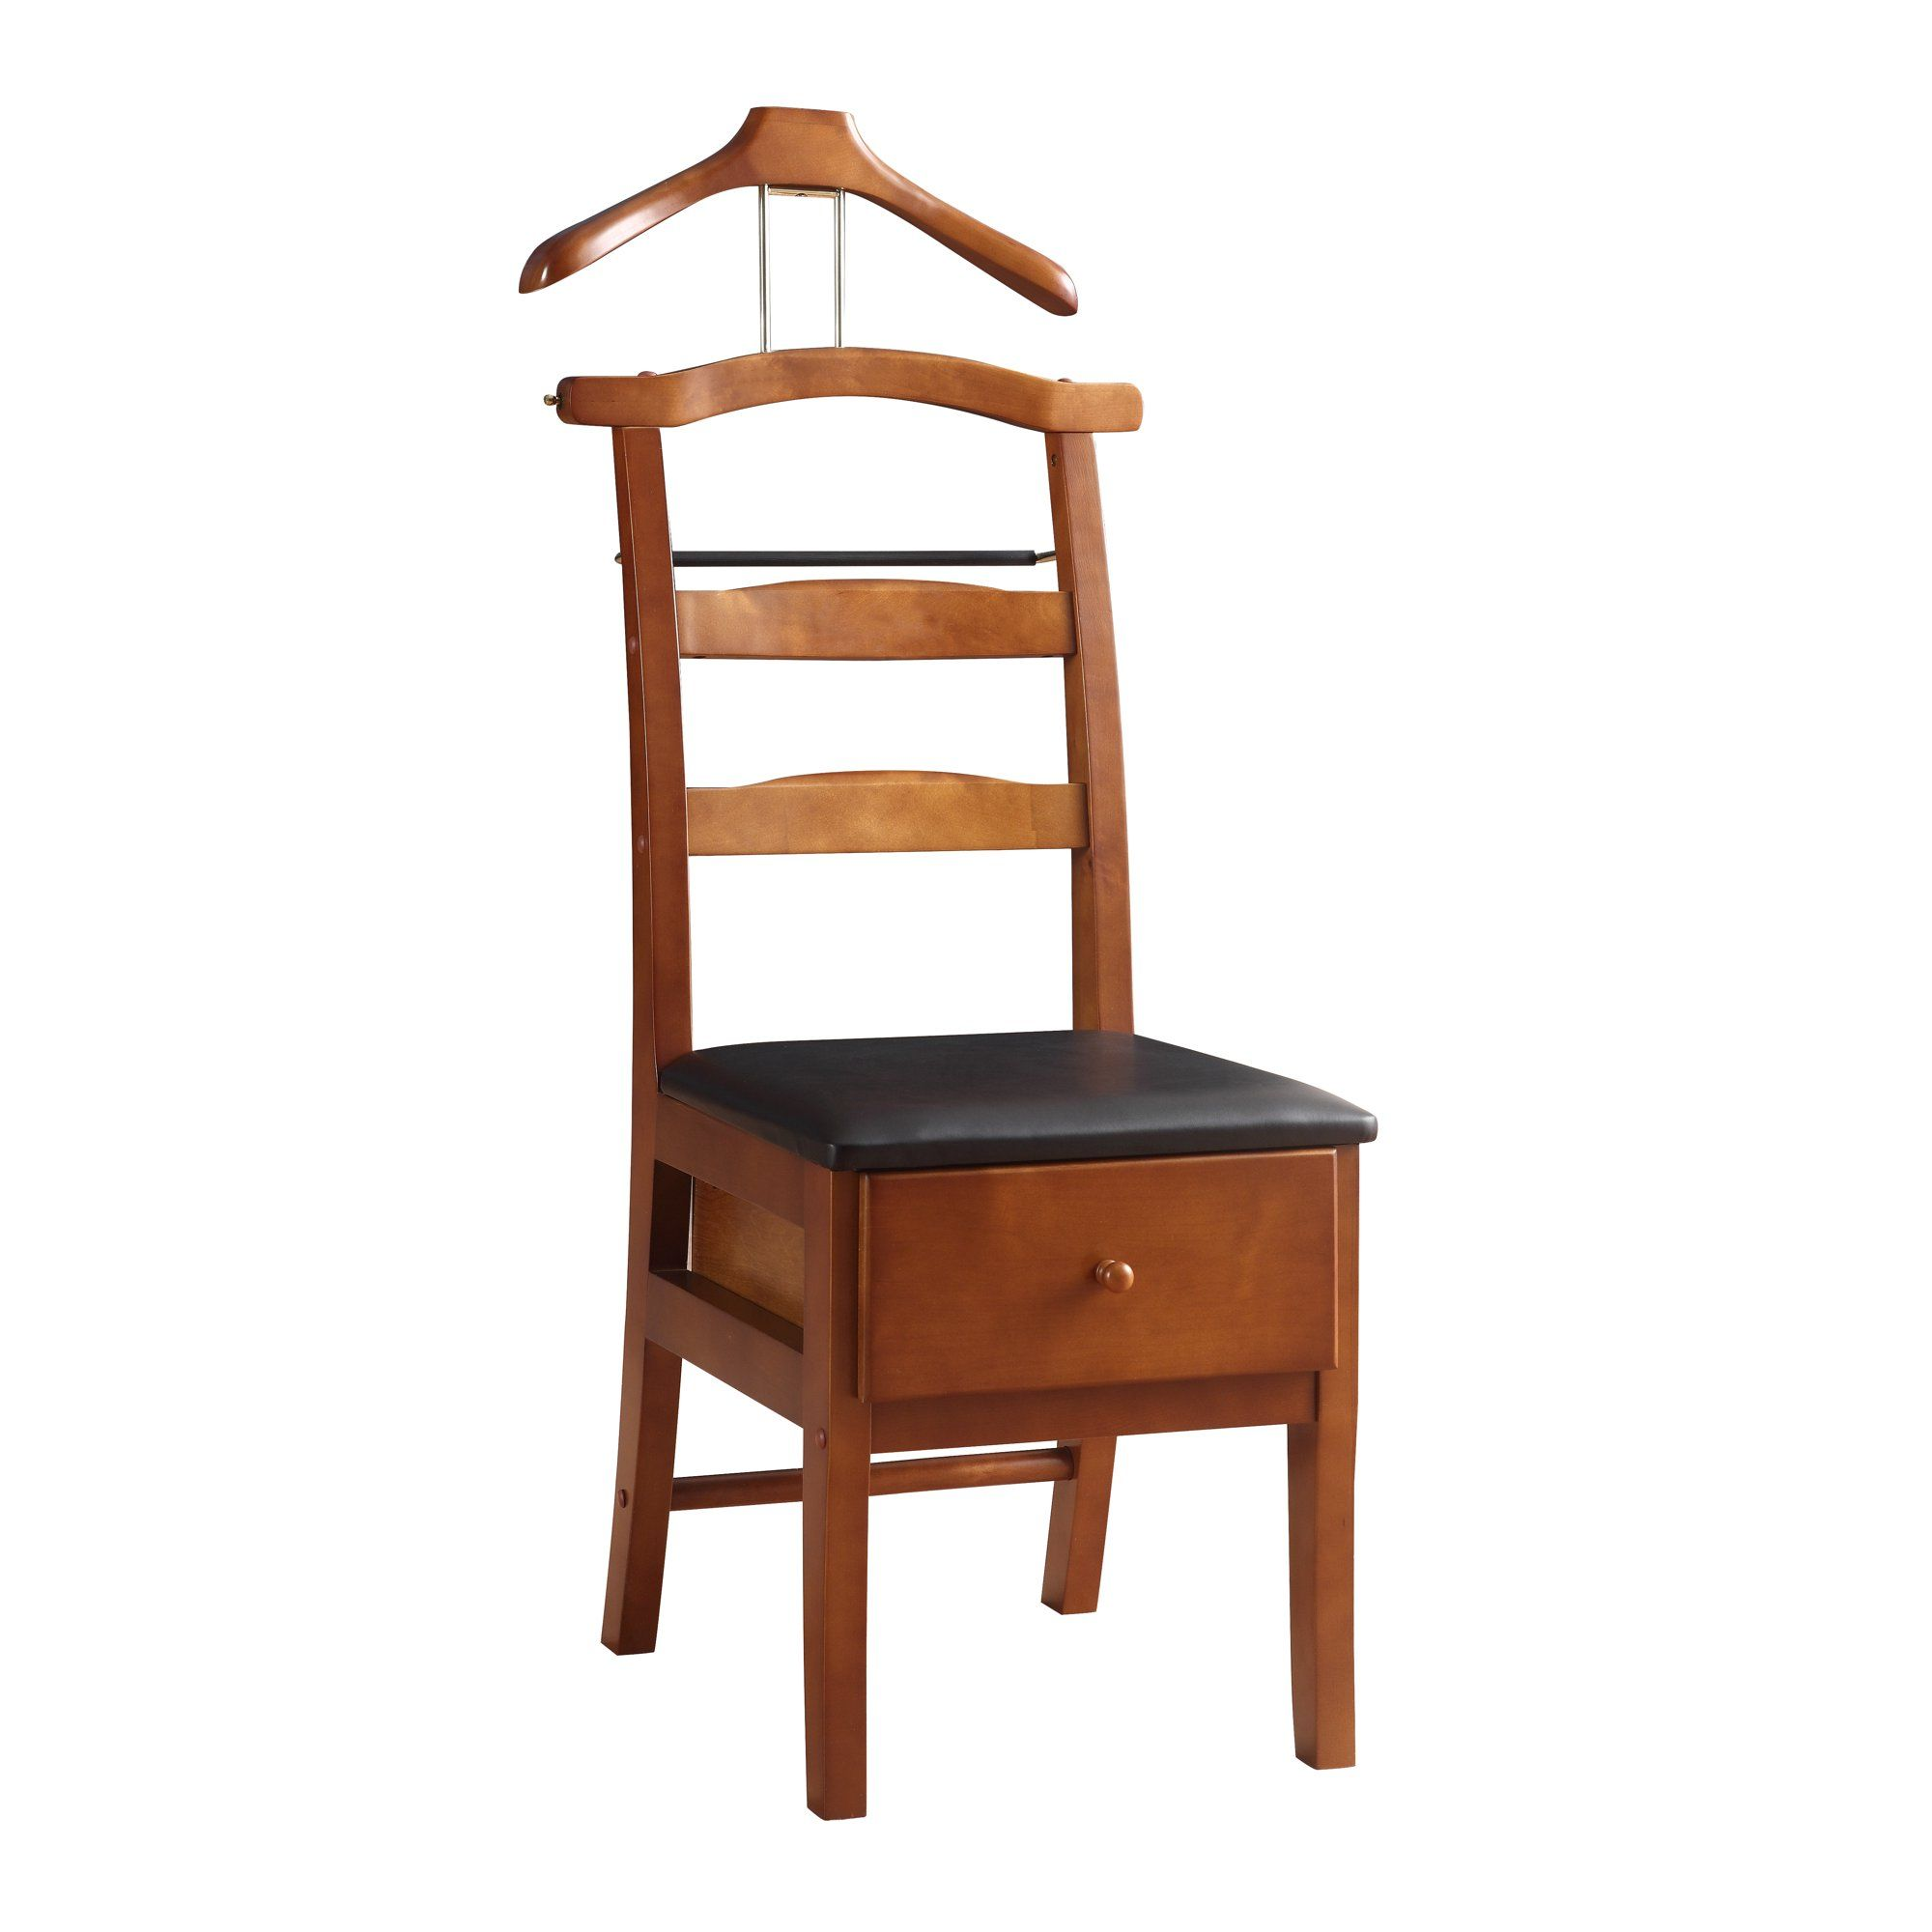 Vl16123 Manchester Chair Valet Light Walnut Finish Traditional Design With Solid Maple Wood Walmart Com In 2020 Maple Wood Valet Chair Solid Maple